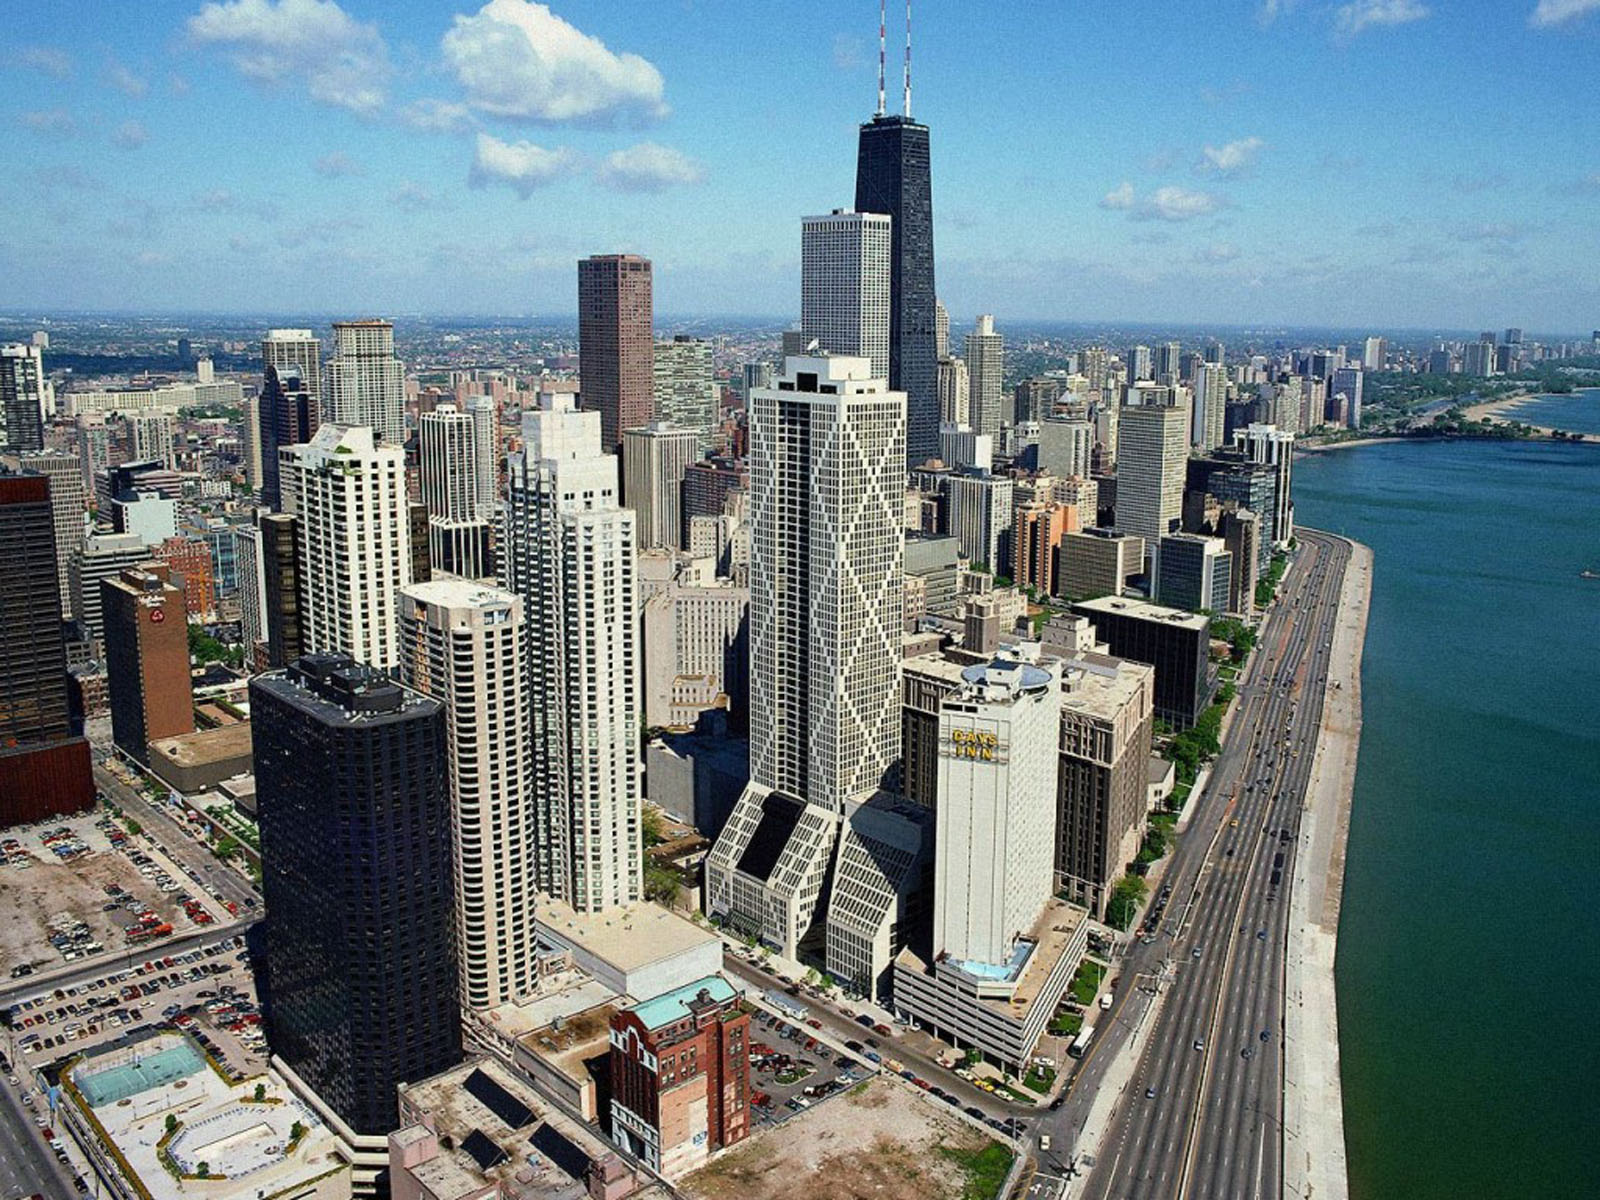 Http Wallpapers Xs Blogspot Com 2012 03 Beautiful Chicago City Wallpapers Html